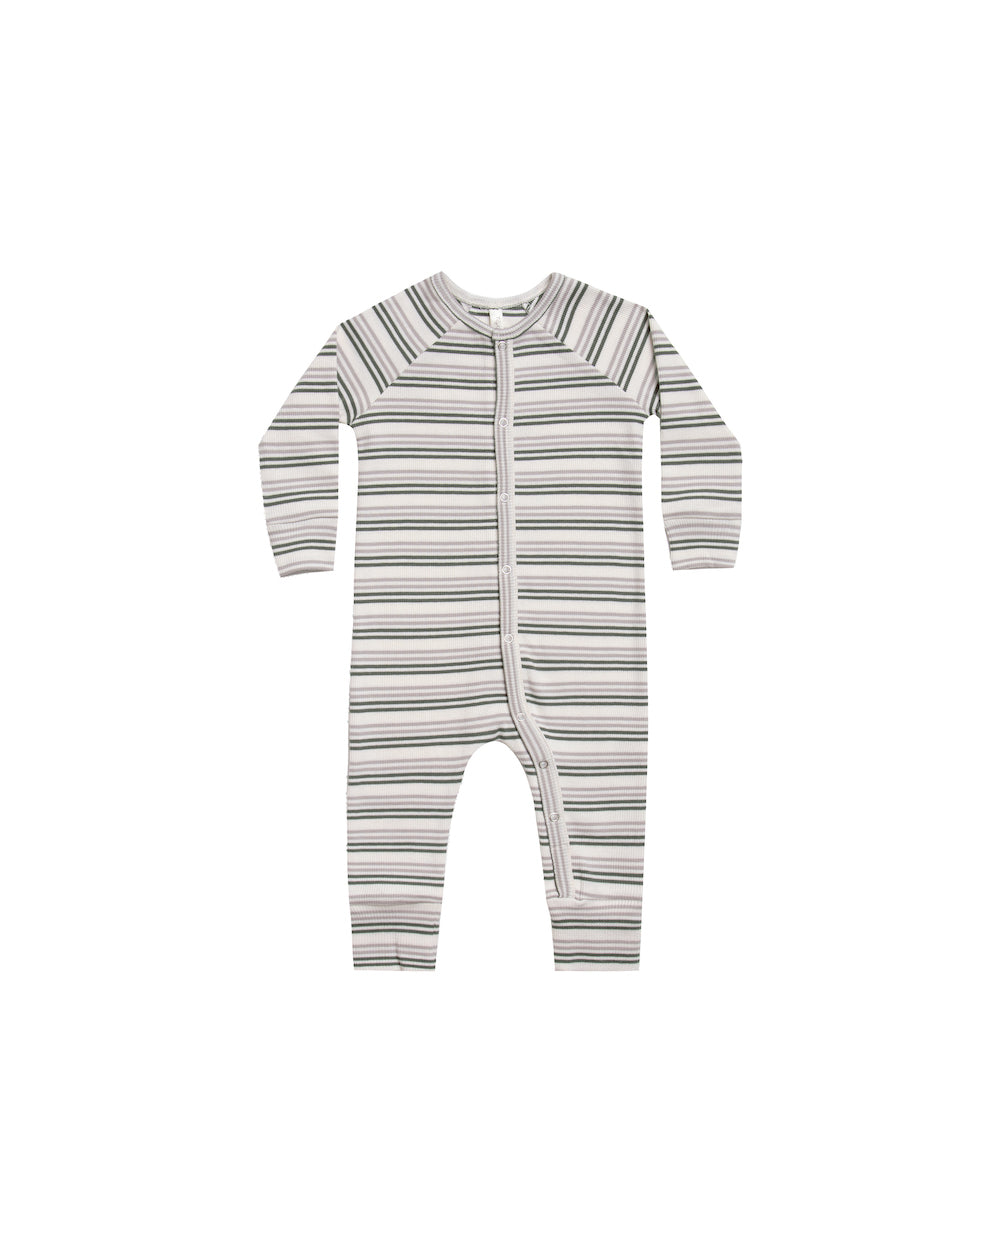 Rylee + Cru Striped Pajama Longjohn - Forest Warm Grey